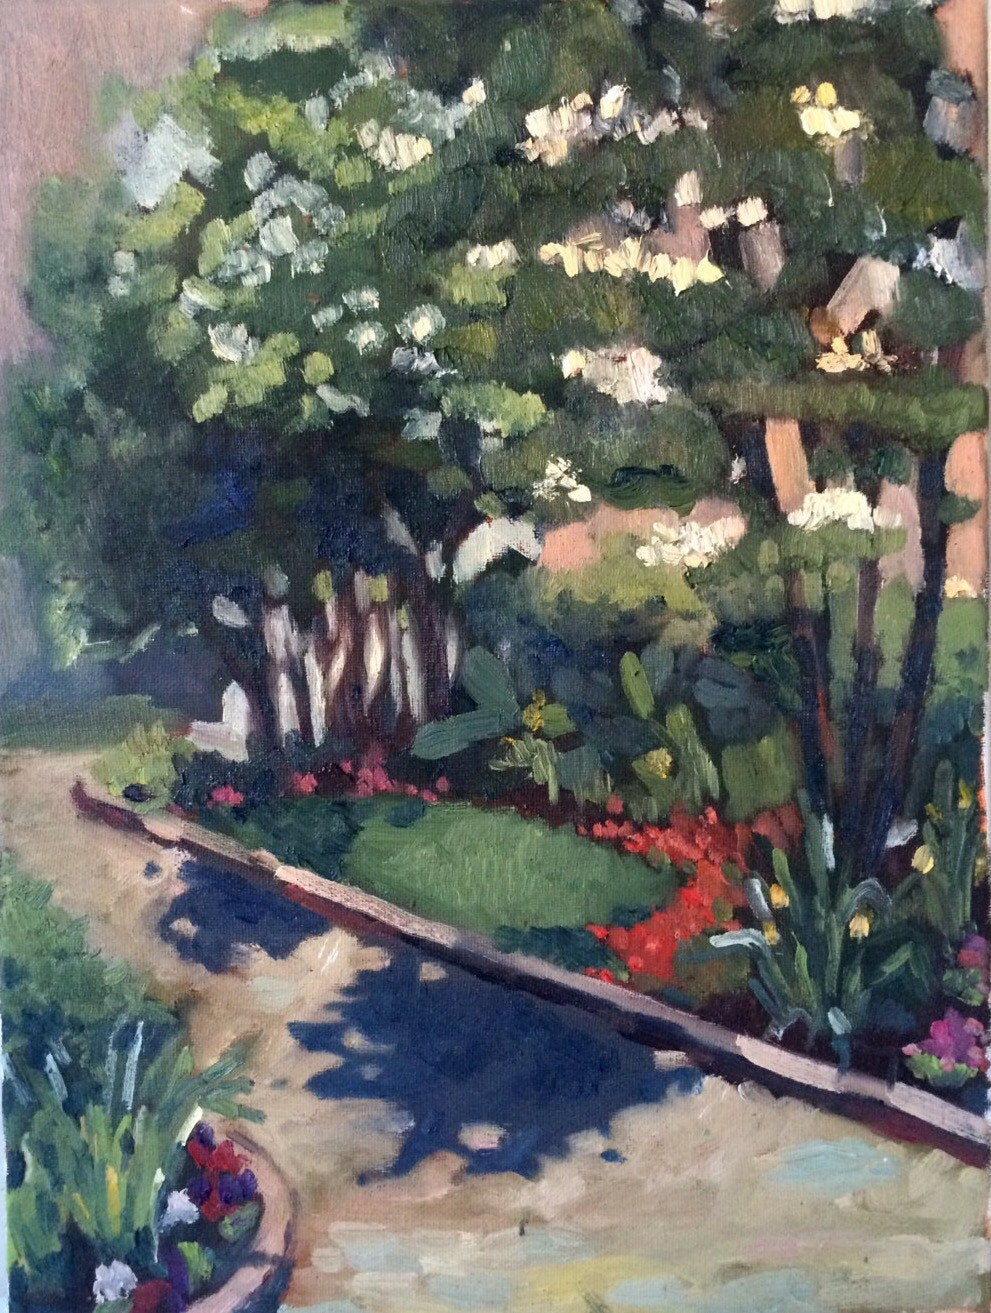 Original landscape painting, plein air Oil painting on canvas, floral painting, gifts for her, home decor, wall art, new england garden